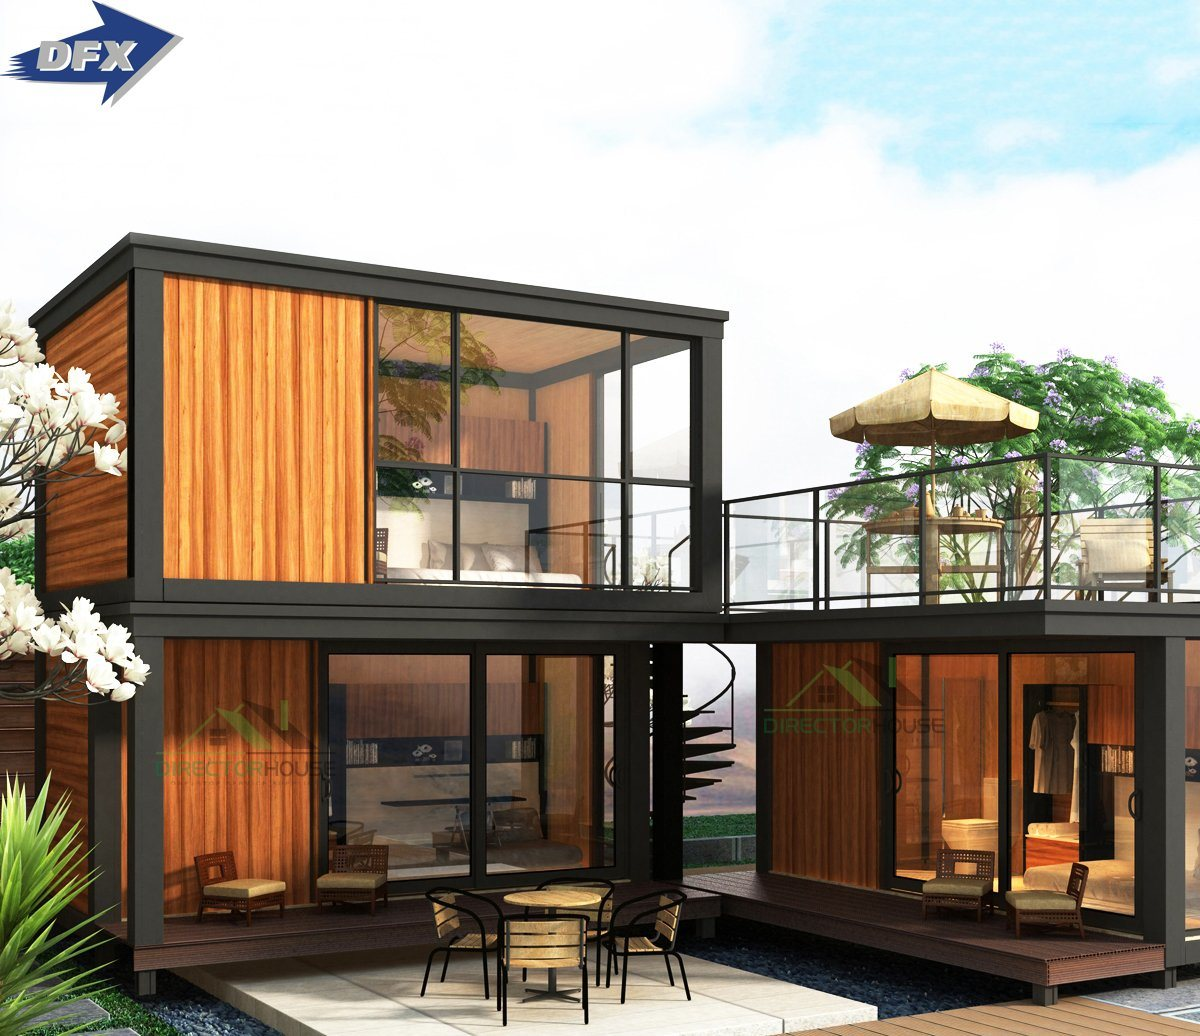 China Fashion Design Portable Homes Low Cost Easy Assemble Houses China Prefab House Prefab Home